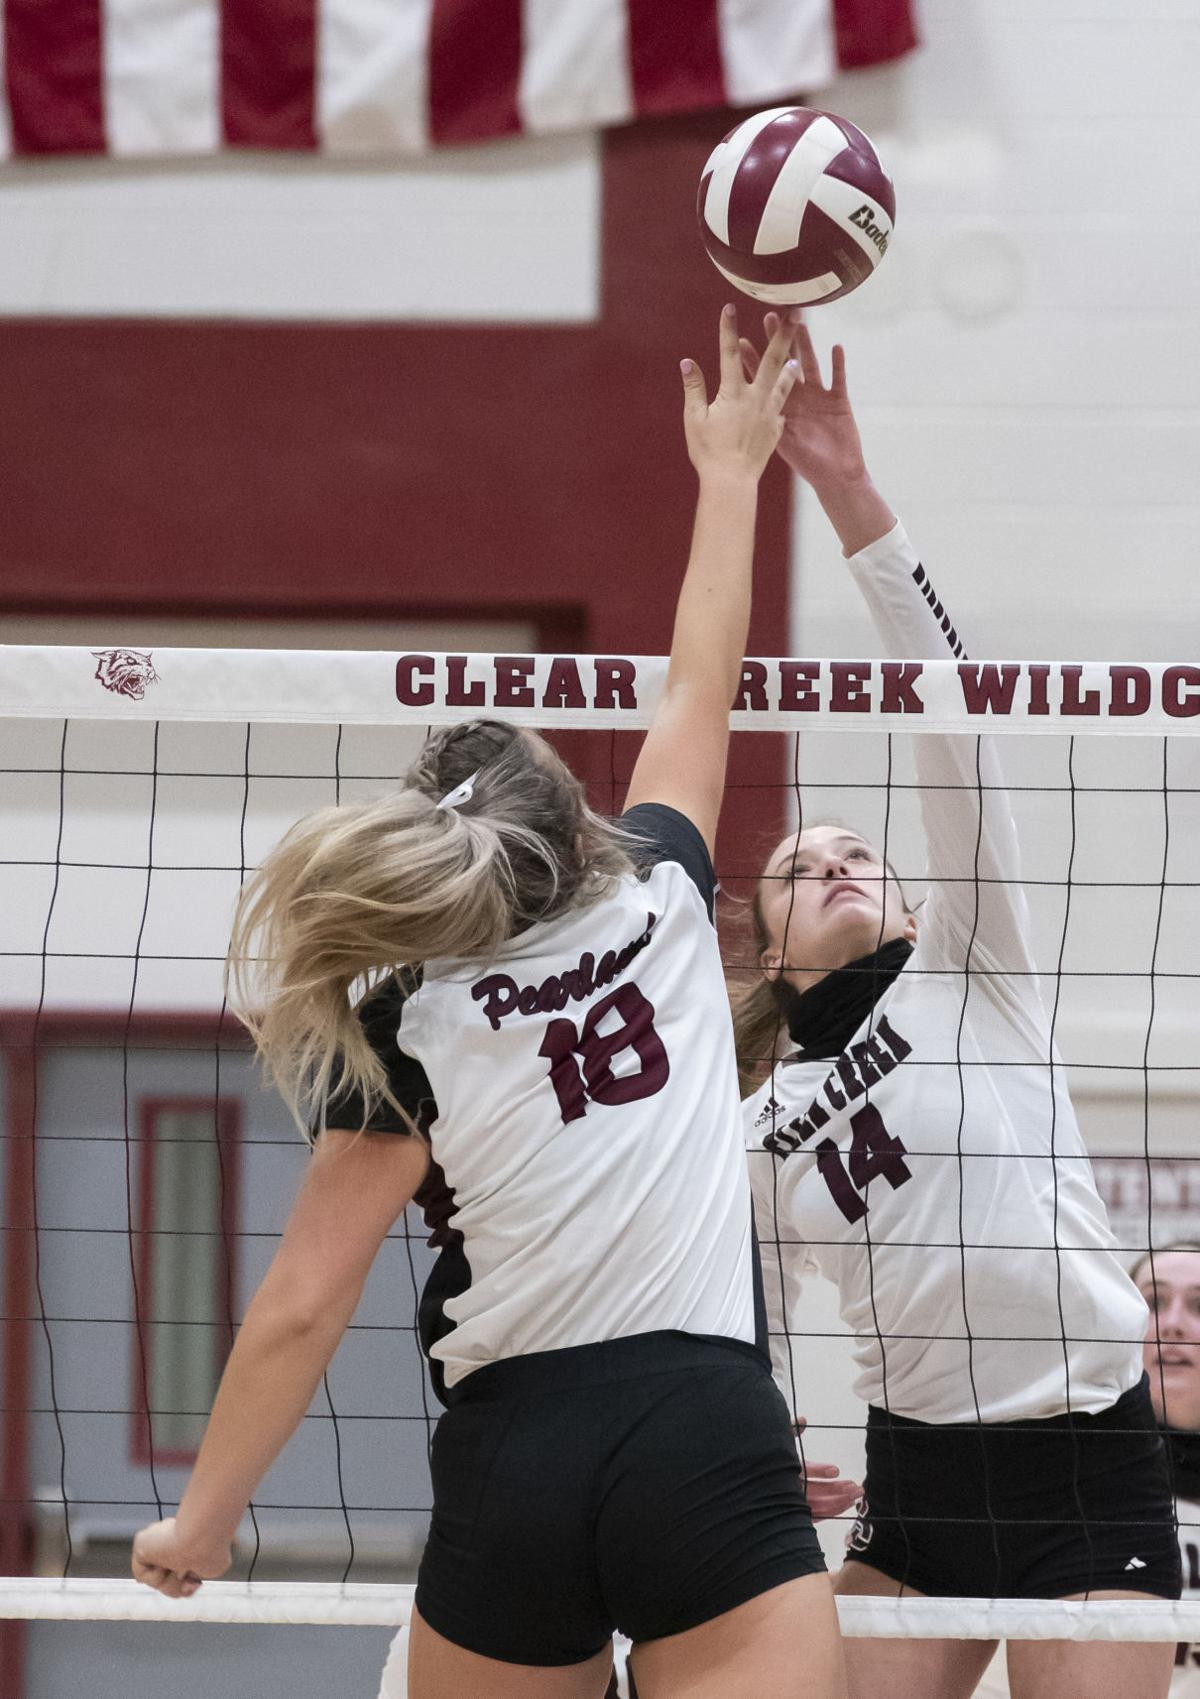 Clear Creek vs Pearland Playoff Volleyball